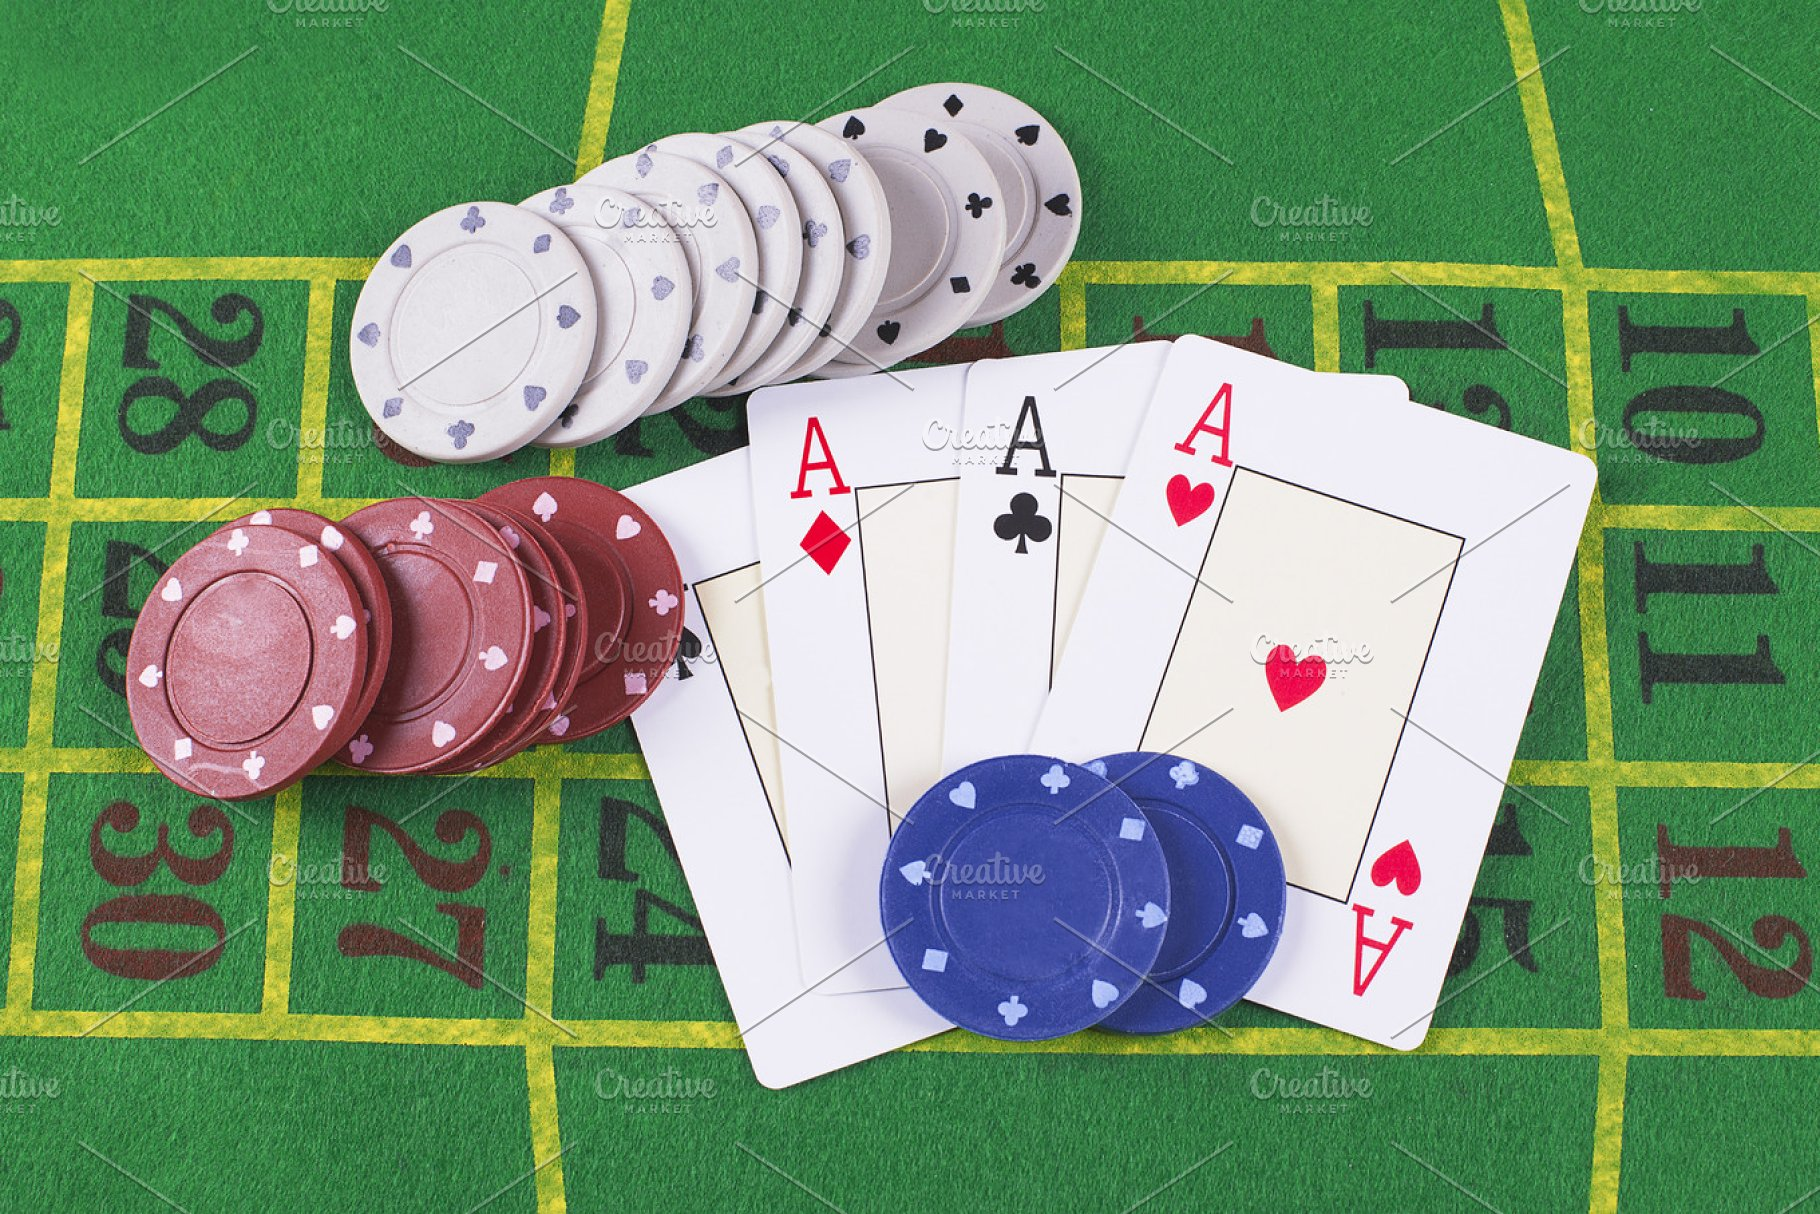 Aces and poker rooms on green carpet